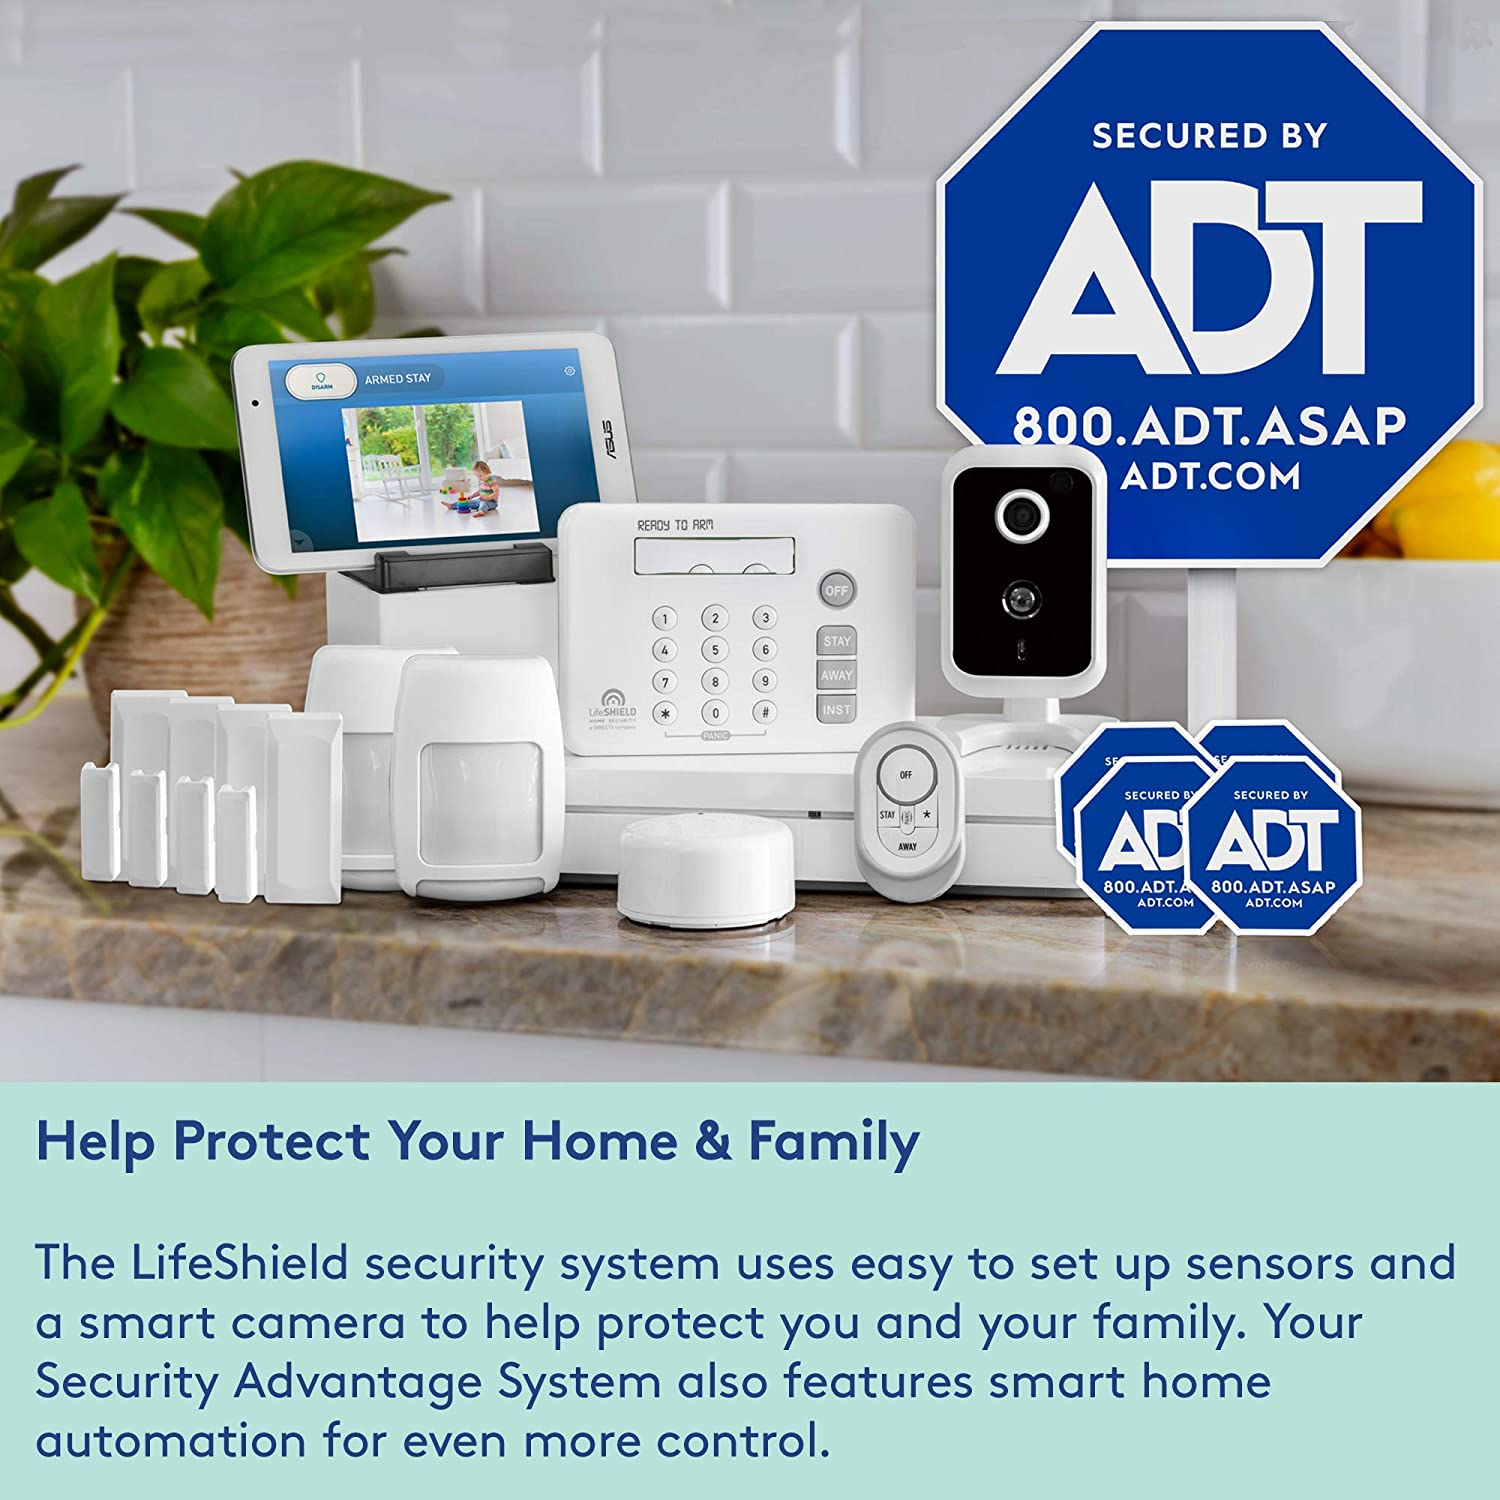 LifeShield, an ADT Company - 14-Piece Easy, DIY Smart Home Security System  - Optional 24/7 Monitoring - Smart Camera - No Contract - Wi-Fi Enabled -